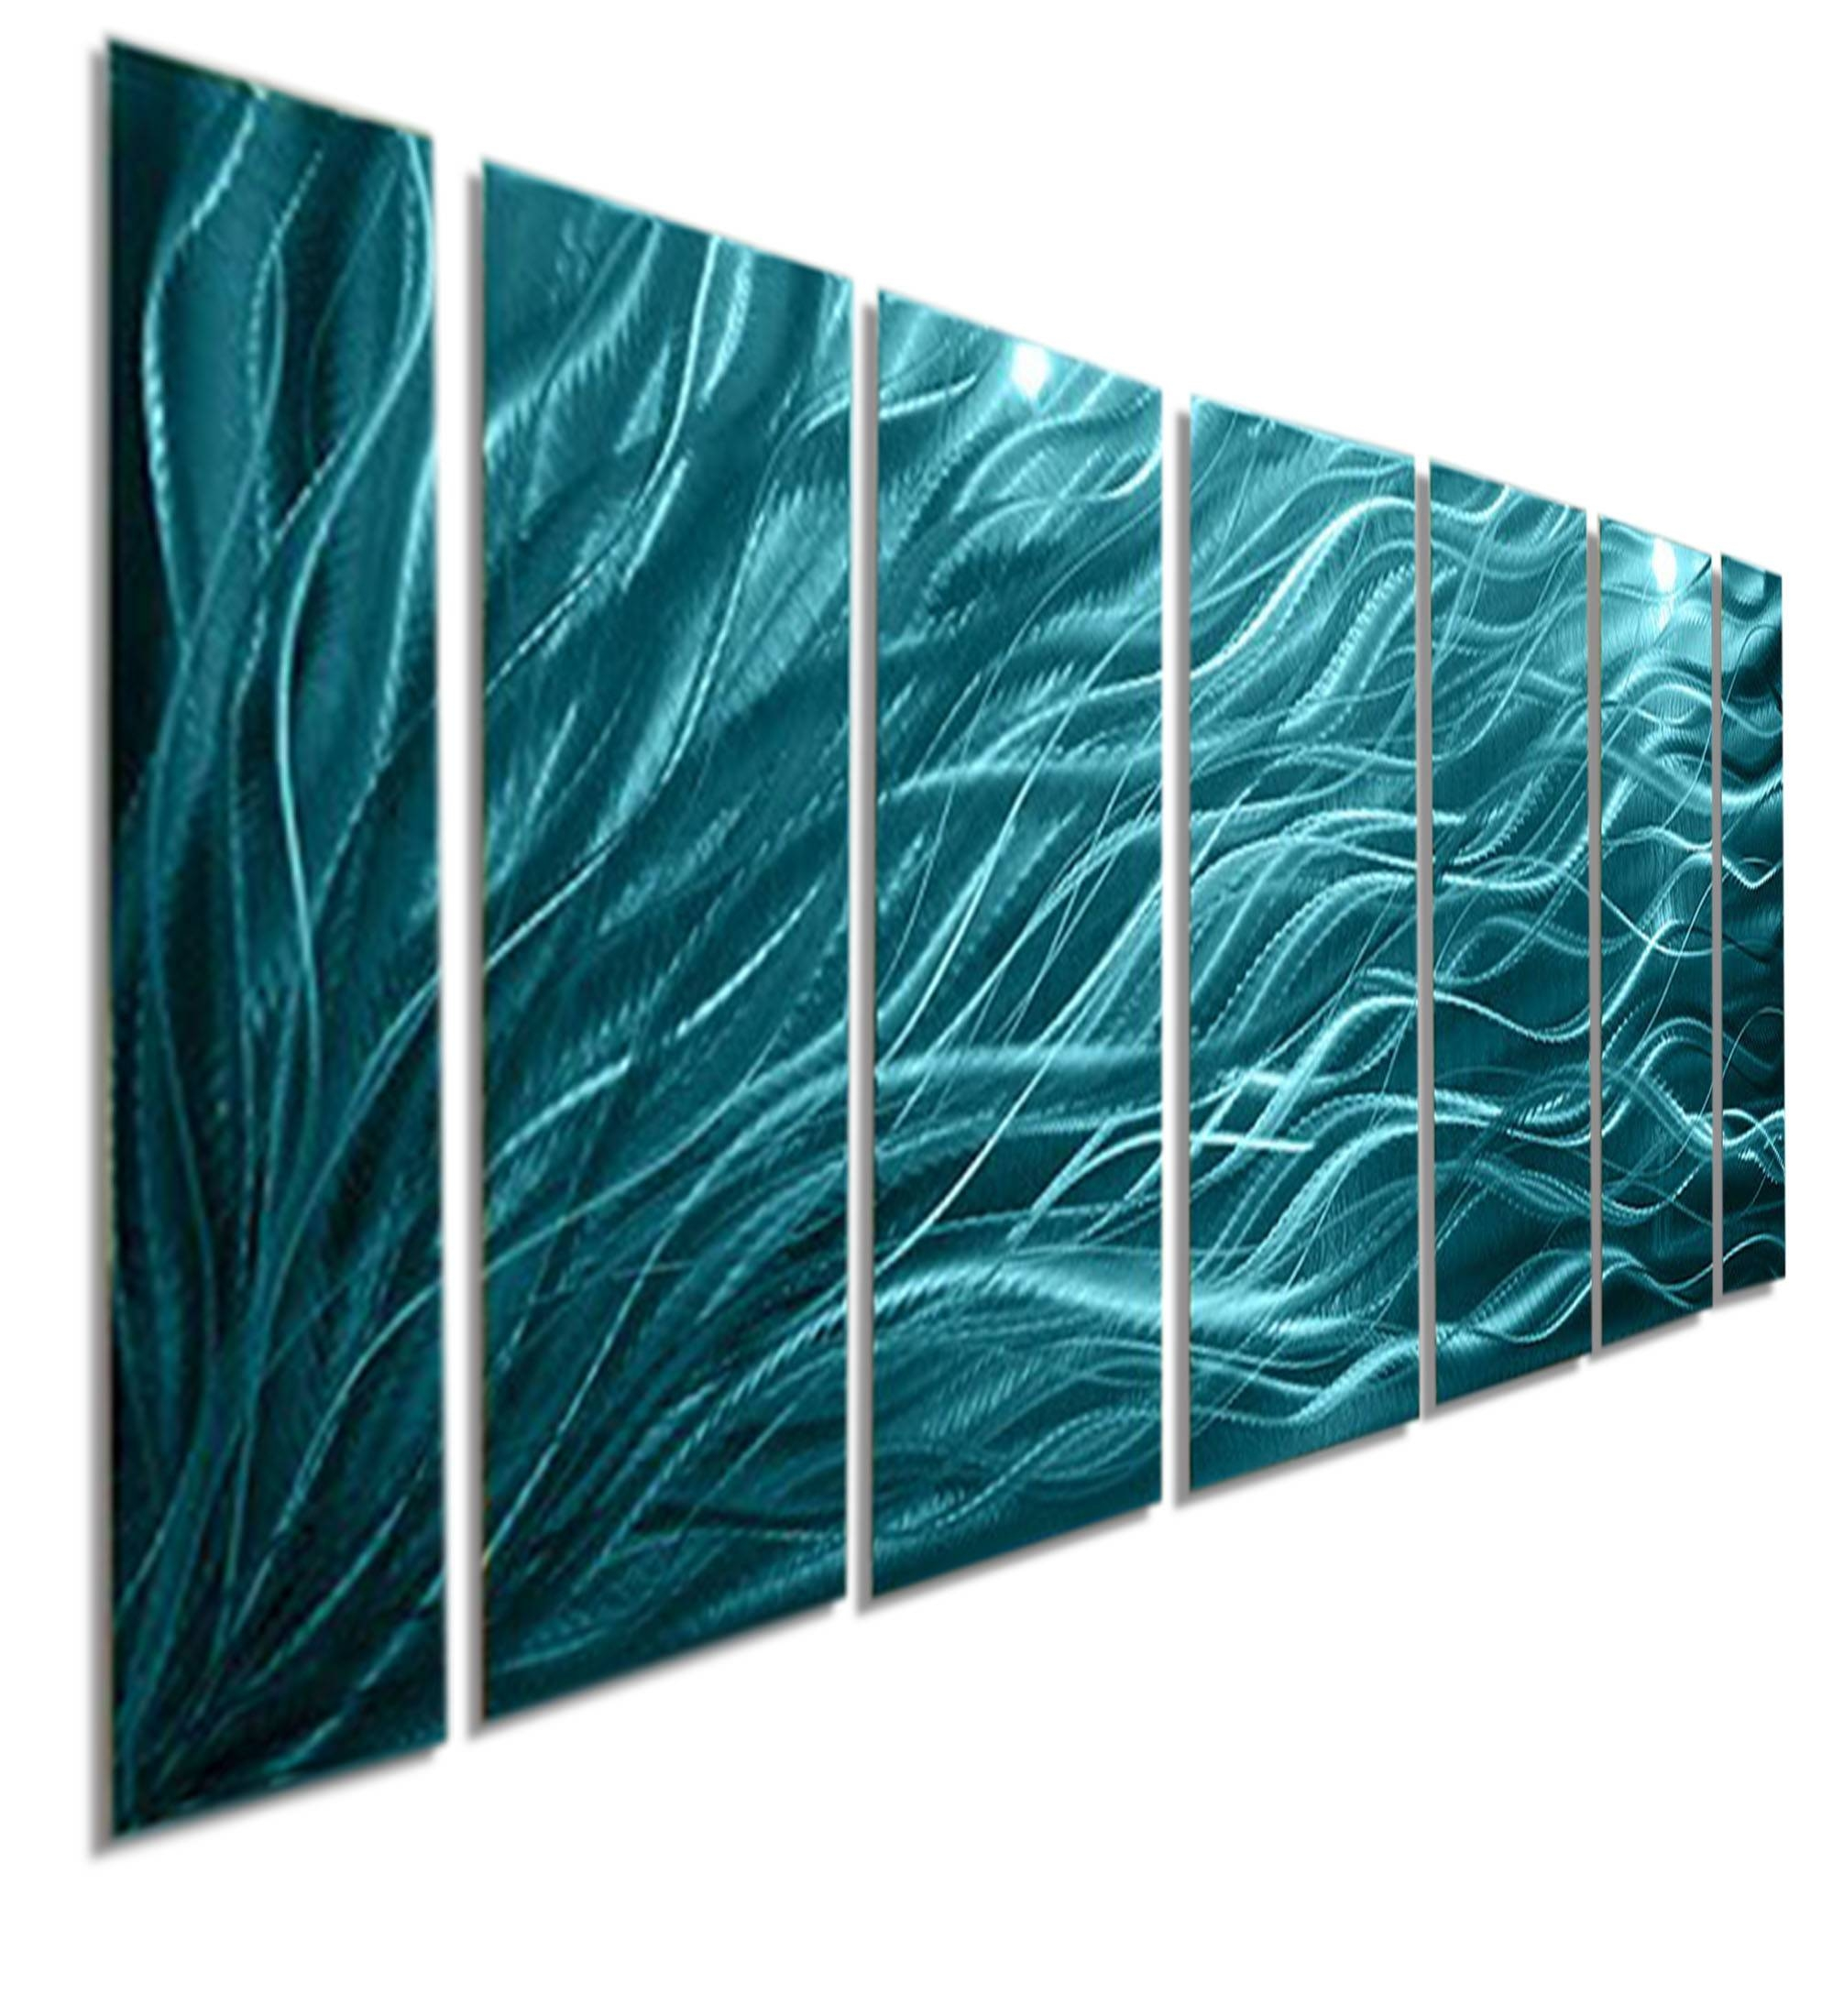 Rays Of Hope Aqua – Large Modern Abstract Metal Wall Artjon With Regard To Newest Large Abstract Metal Wall Art (View 14 of 20)